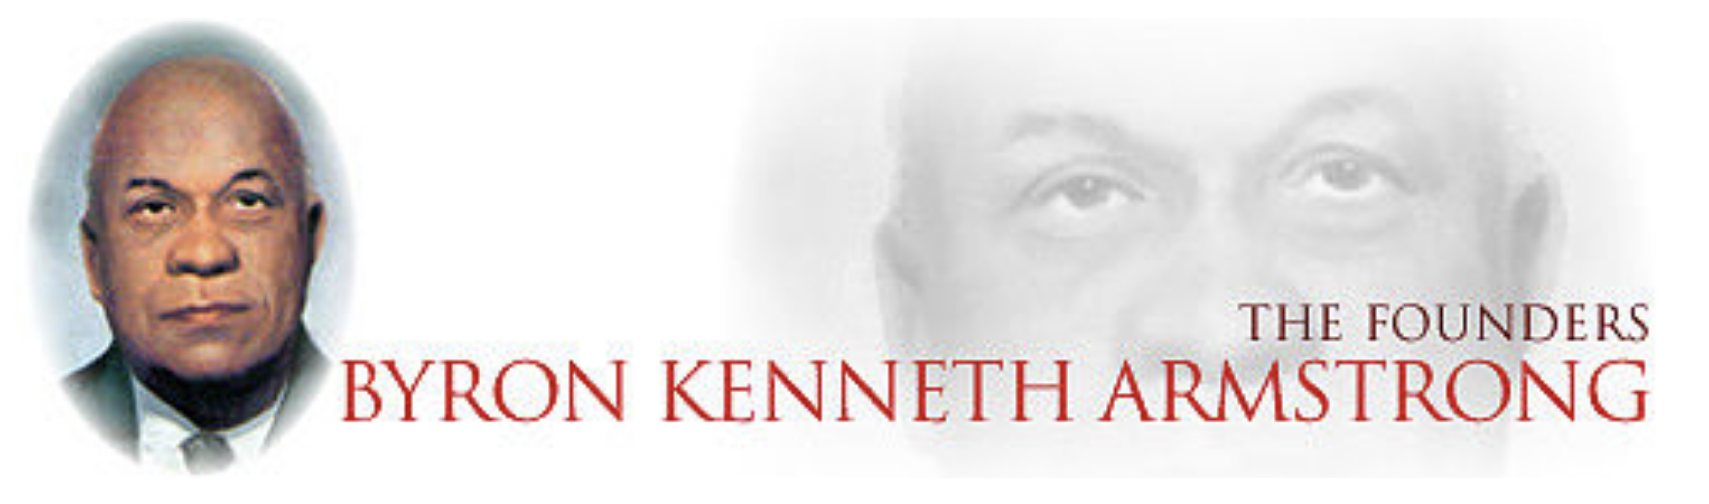 Byron Kenneth Armstrong (1892-1980), born in Westfield, Indiana, entered Indiana University where he studied philosophy, mathematics, and sociology. After finishing Indiana University, he earned his Master's degree at Columbia University in 1913, and subsequently the Doctor of Philosophy degree from the University of Michigan. He held teaching positions in Florida, Indiana, Kansas, and Oklahoma. During World War I, he served as an investigator for the Department of Labor. He was awarded the Laurel Wreath in 1935.